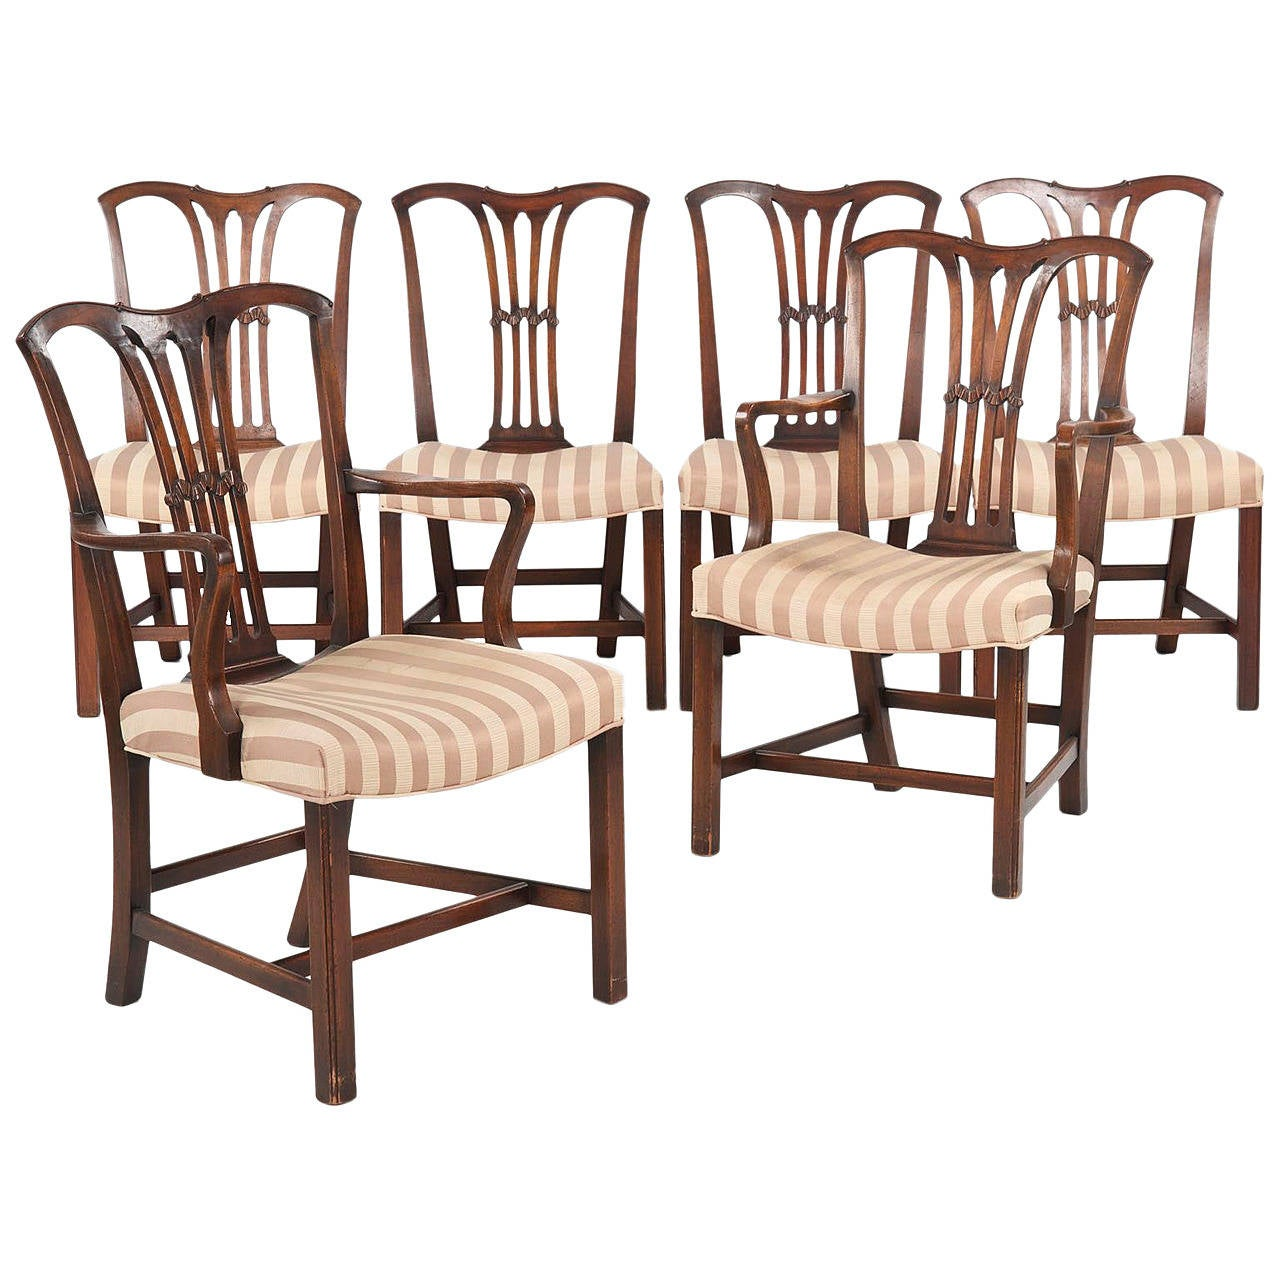 Set of six chippendale style antique dining chairs 19th for Antique dining room furniture